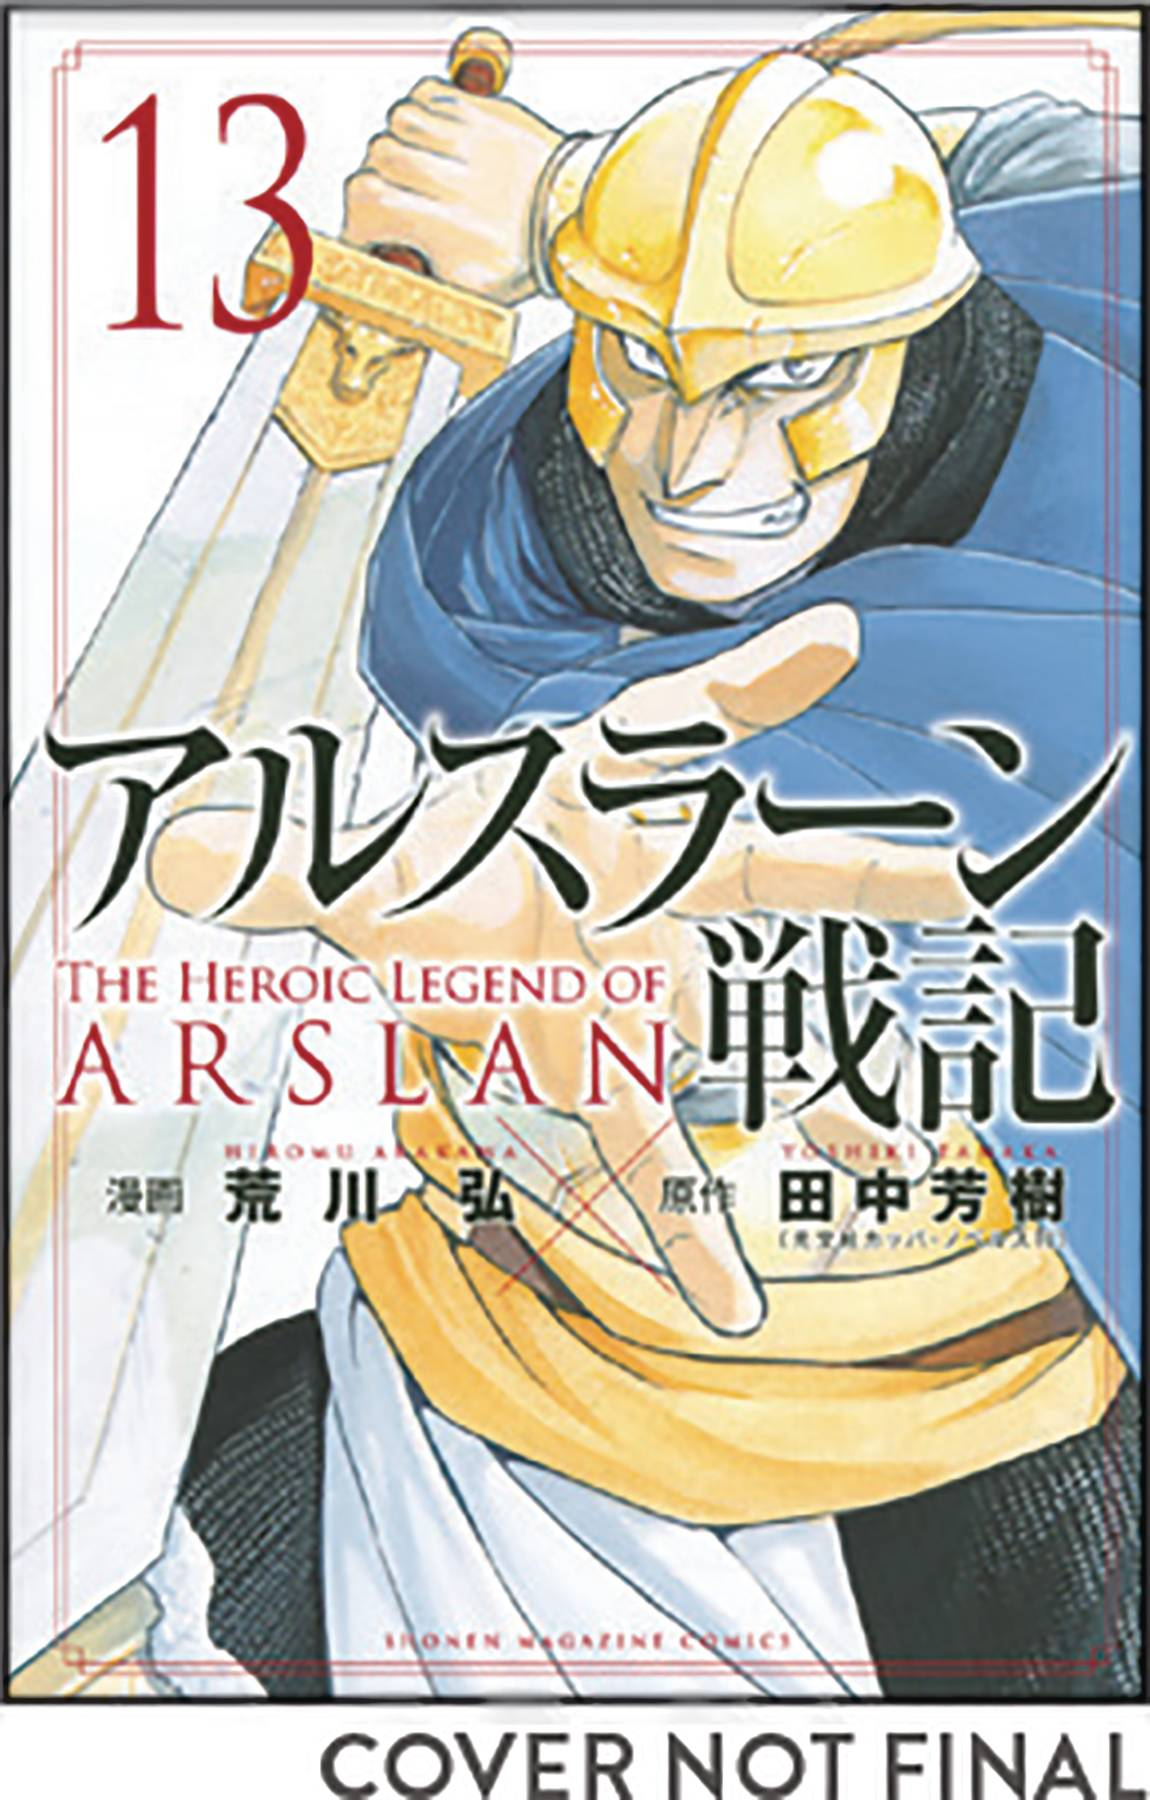 HEROIC LEGEND OF ARSLAN GN 13